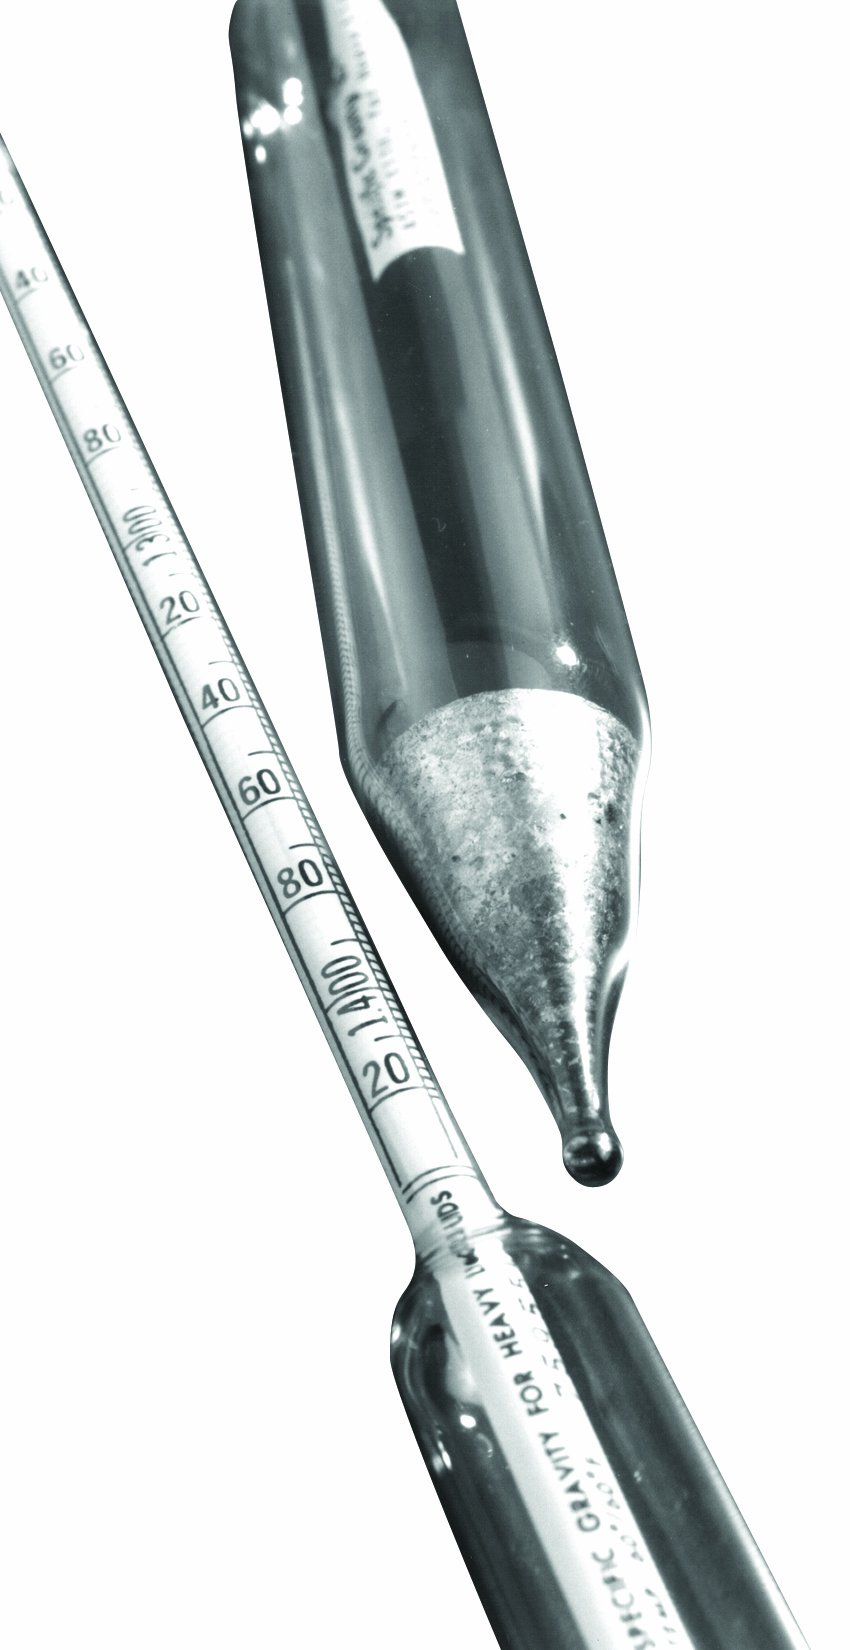 Thomas Durac Specific Gravity Plain Form Hydrometer, Heavier Than Water, 1.200 to 1.400 Range, 165mm Length